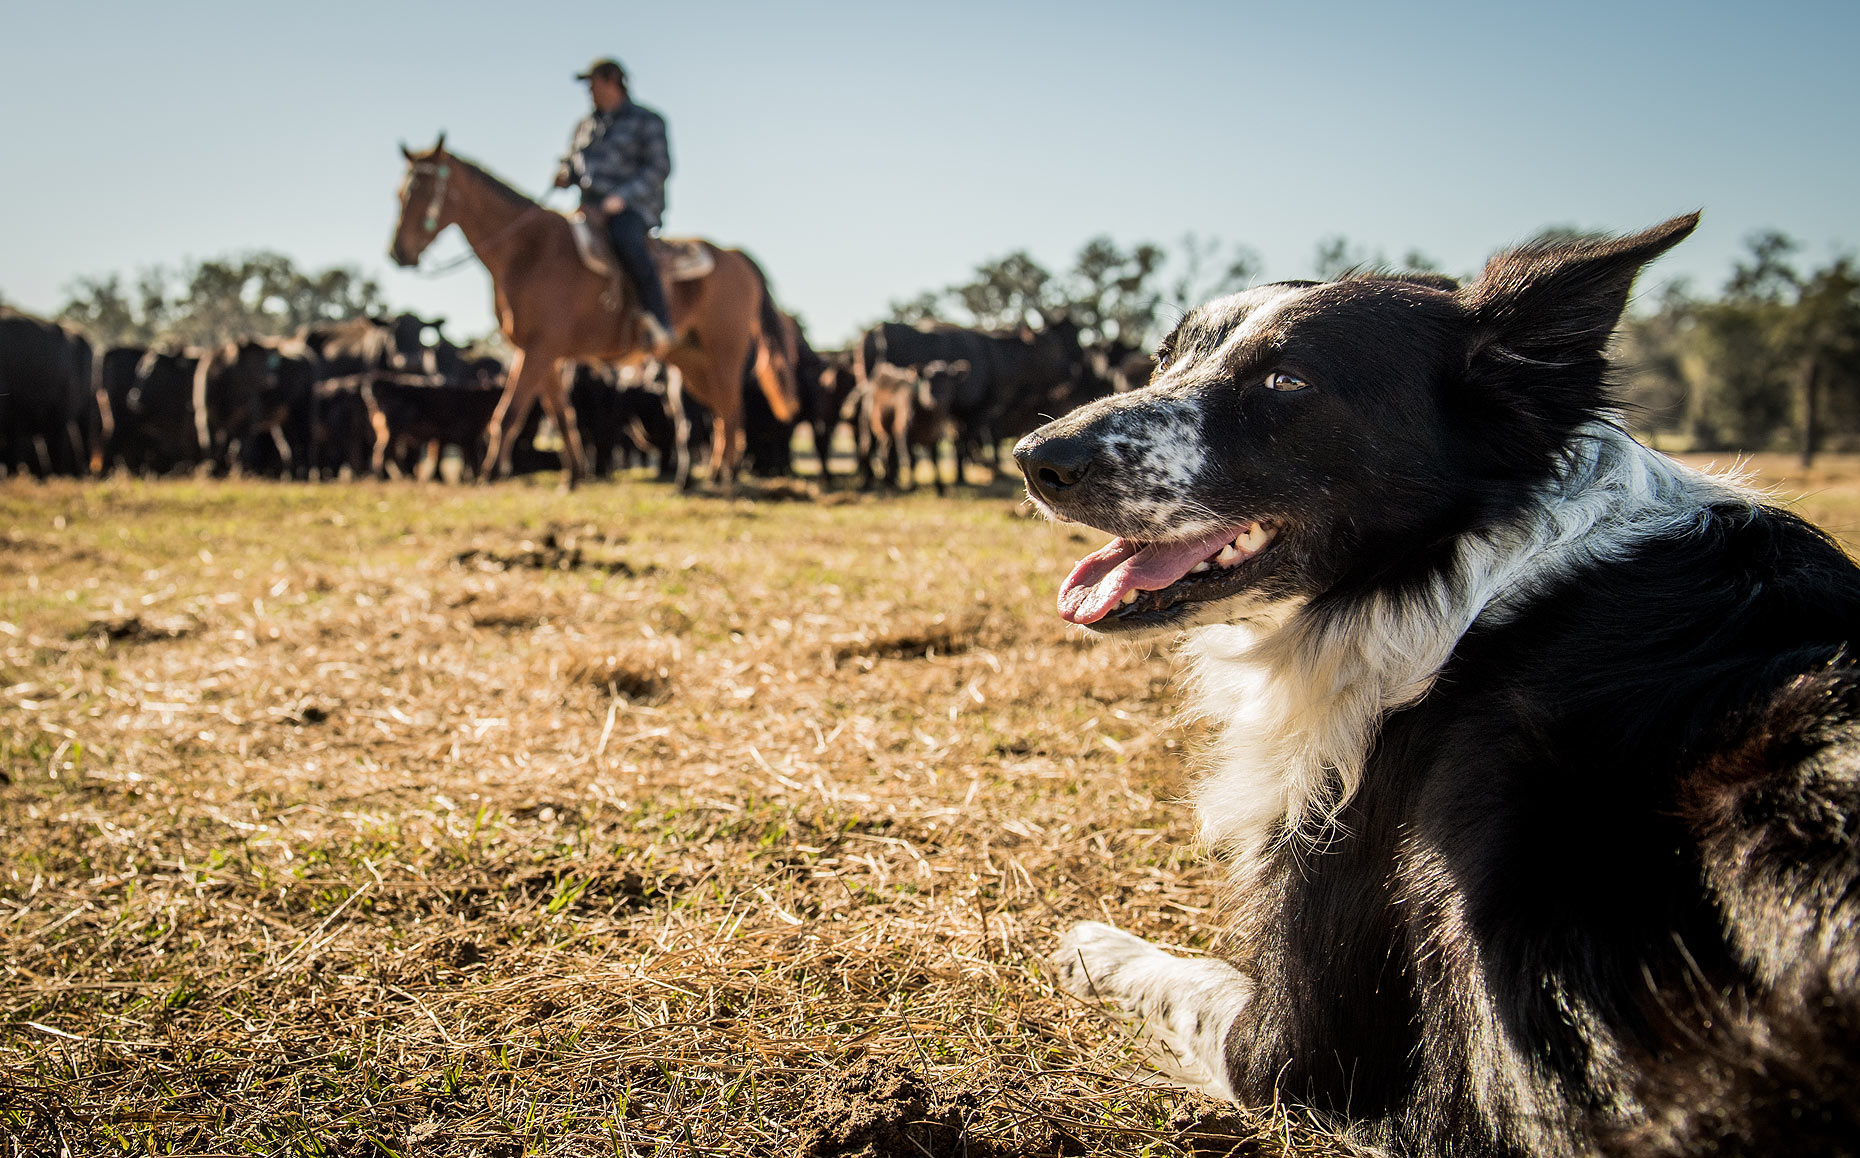 Border Collie and Cattle Herd with Cowboy